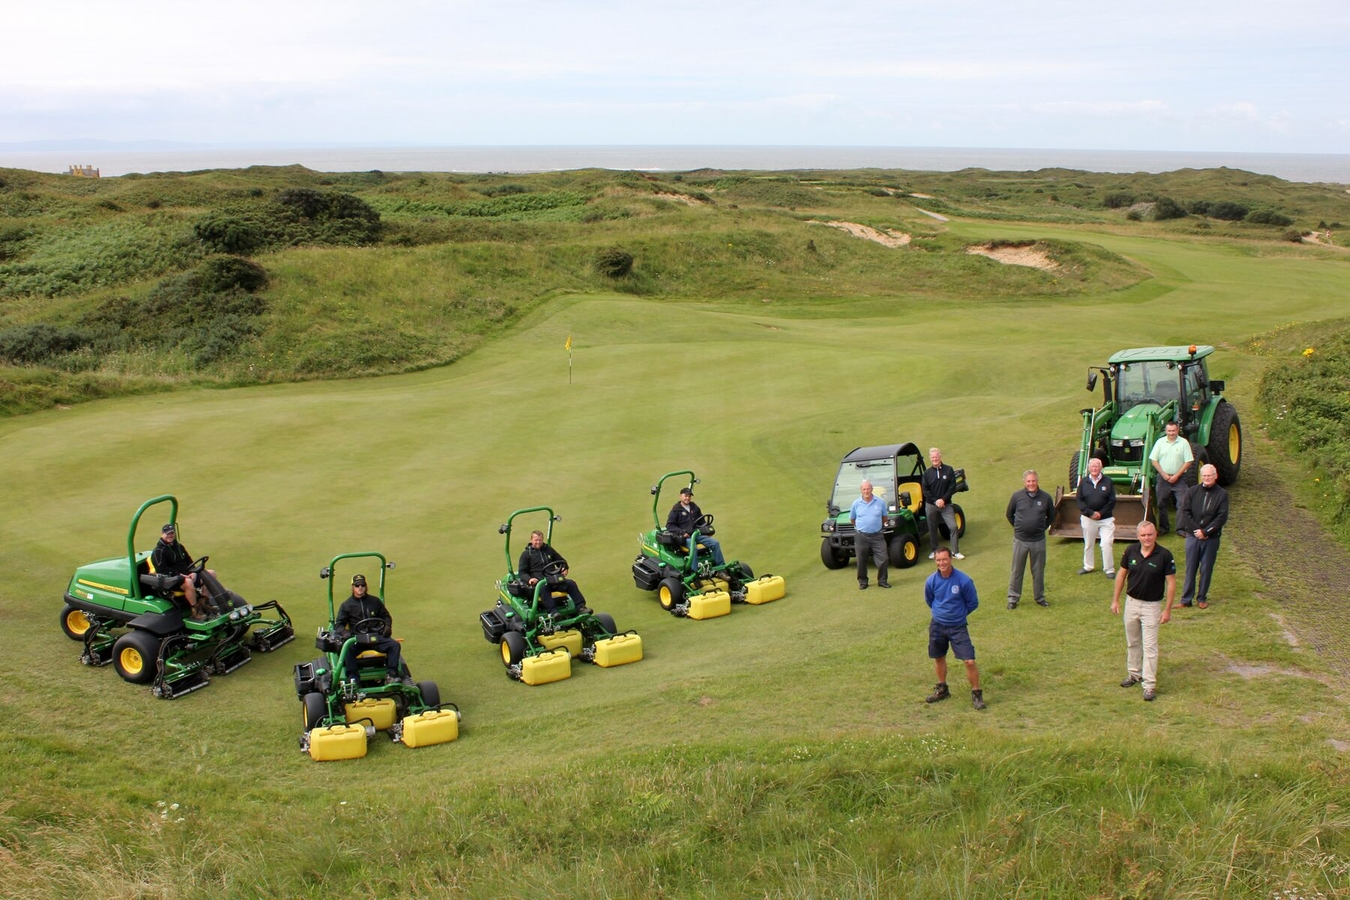 Pyle & Kenfig Golf Club put in the first UK order for three new John Deere 2750E hybrid electric triplex mowers, supplied by local dealer Powercut.